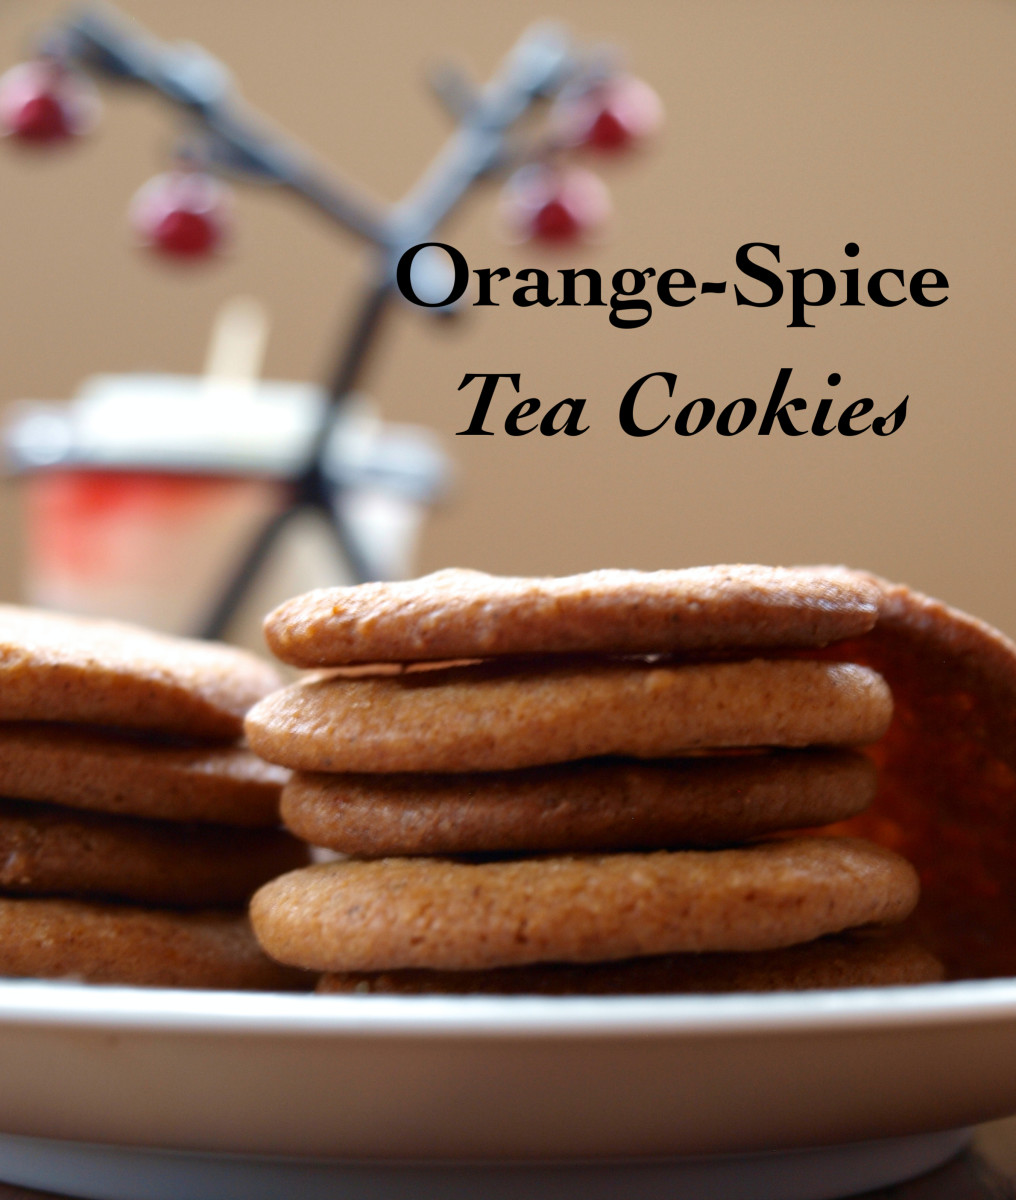 Orange-Spice Tea Cookies Recipe